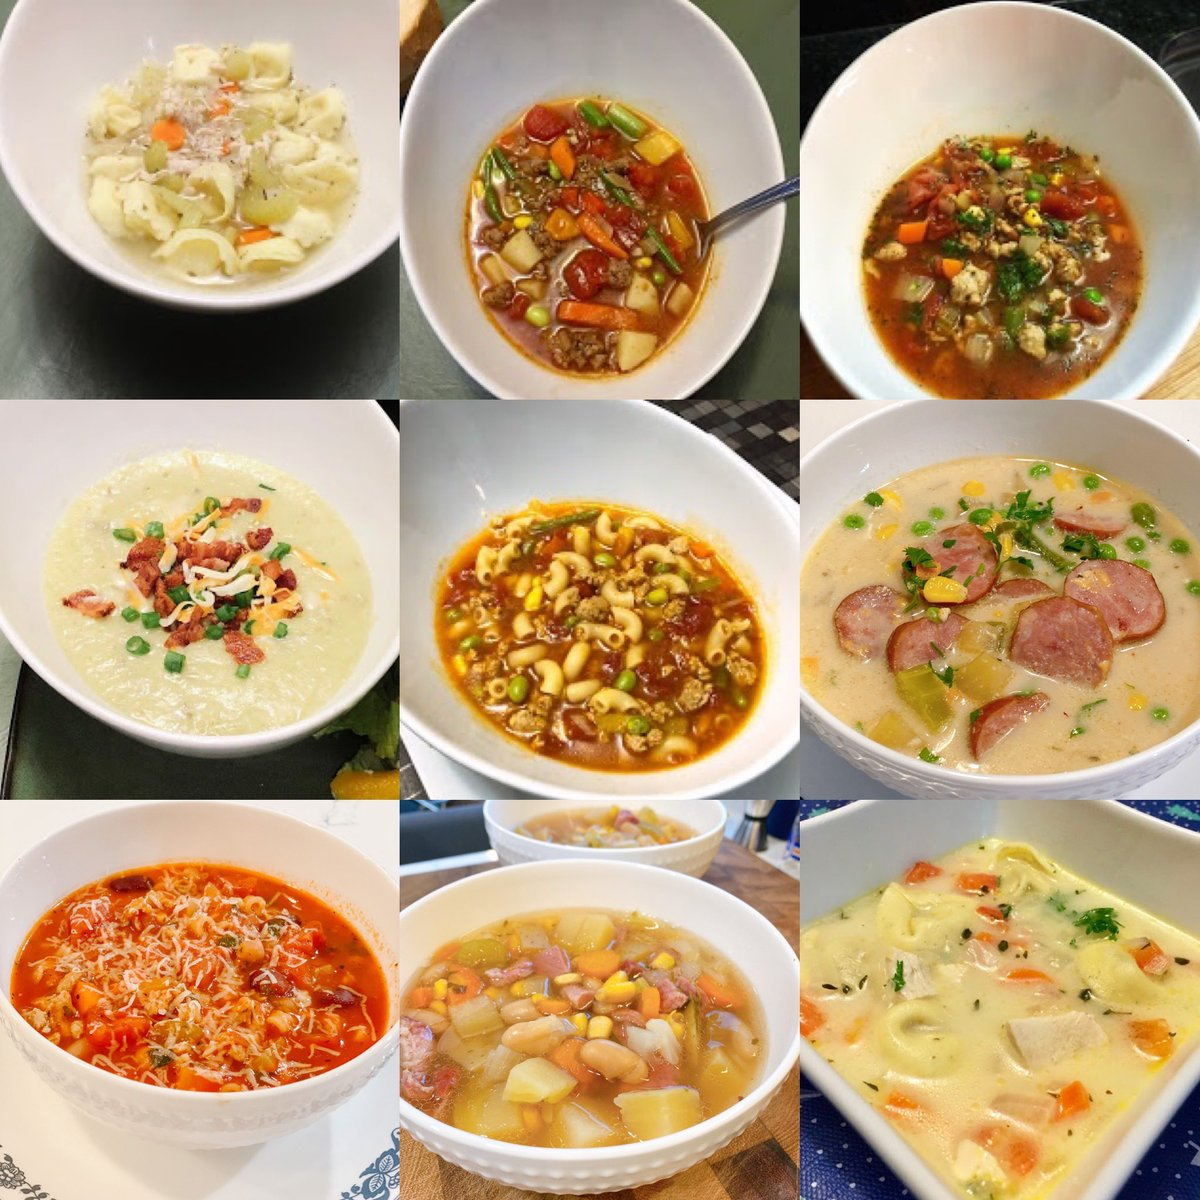 HoneyBears & SydneyBeans:   White Bean & Ham Soup, Pasta Fagioli Soup, Potato Kielbasa Soup and 20 MORE Great Soup Recipes!  https://t.co/0XKX3KokPc  #blog #FoodBlogger #MomBlogger #MomLife #Dinner #soup #comfortfood #chickennoodle #crockpot #healthyeating https://t.co/0k7aSX1Ia2